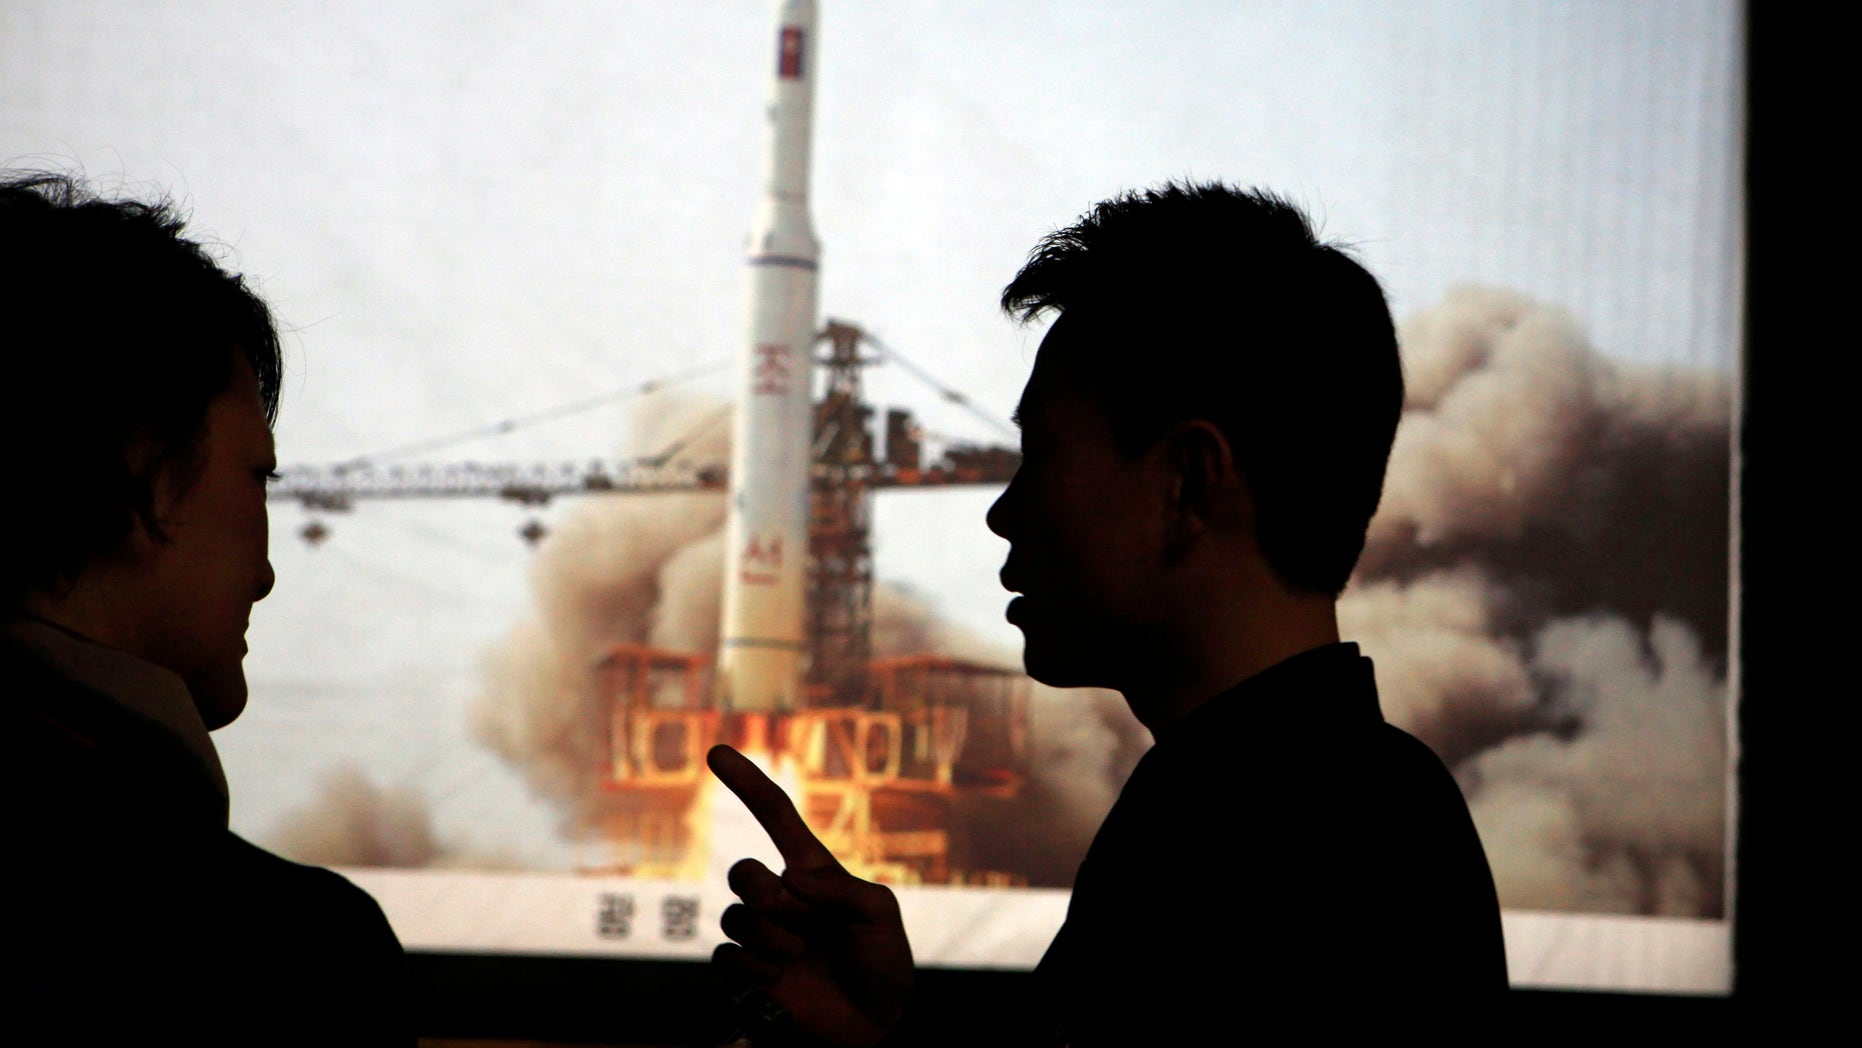 April 10, 2012: In this photo North Korean guide Kim Won Ho, right, speaks to a foreign journalist near a photo depicting the 2009 satellite rocket launch at the Three Revolutions exhibition hall in Pyongyang, North Korea.